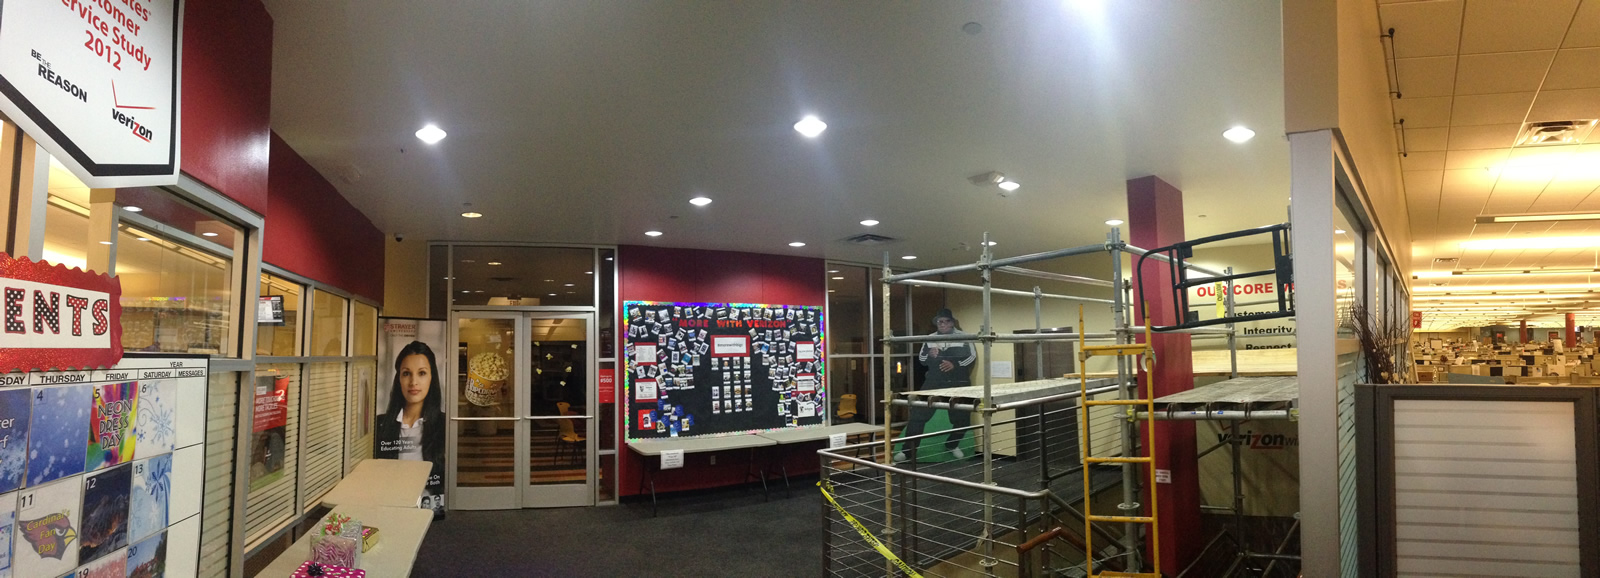 retail-lighting-electrical-services